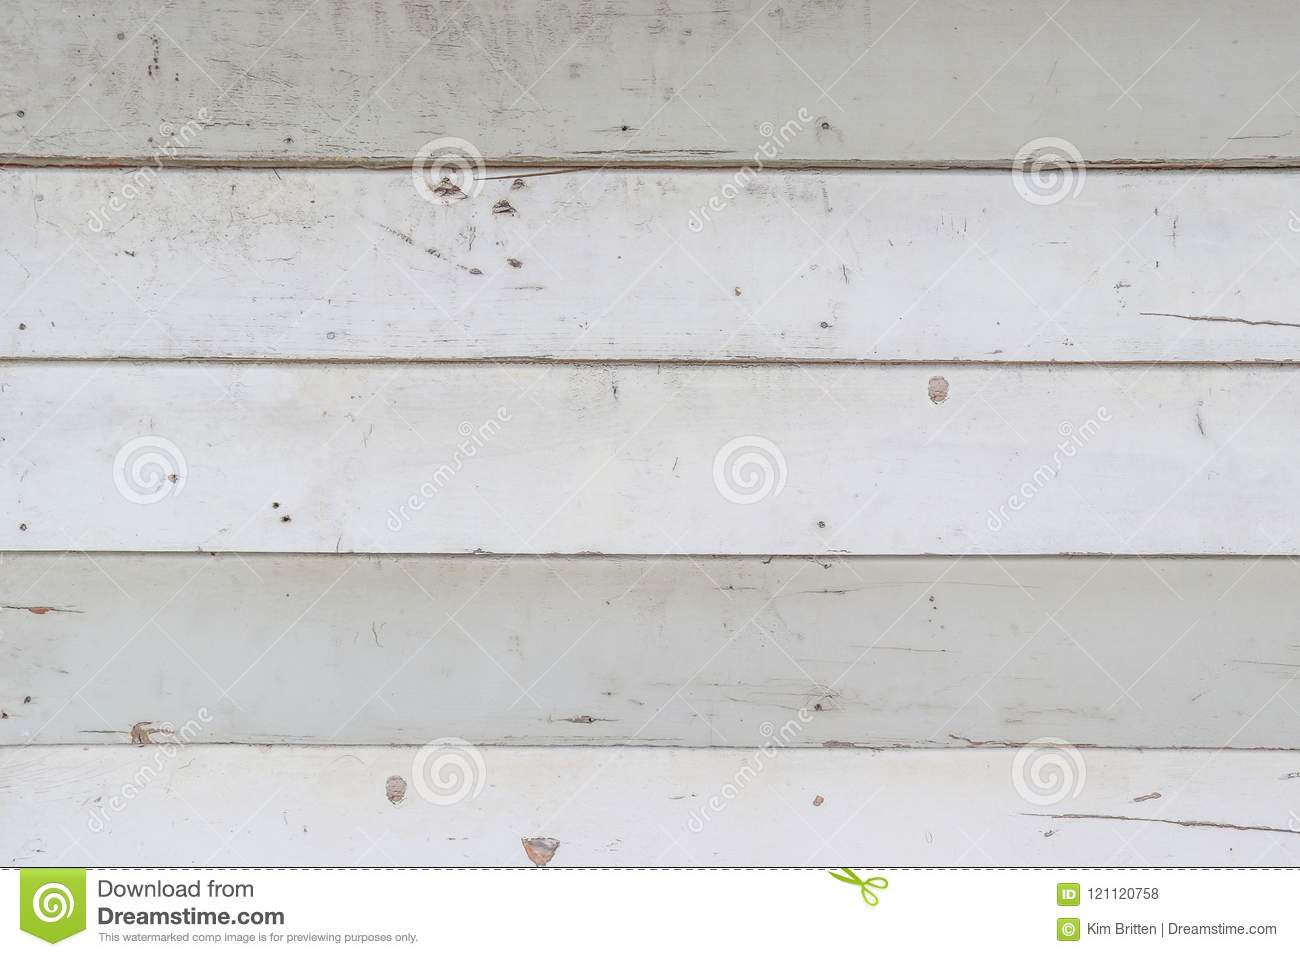 weathered and dirty white weatherboards on the exterior of a house